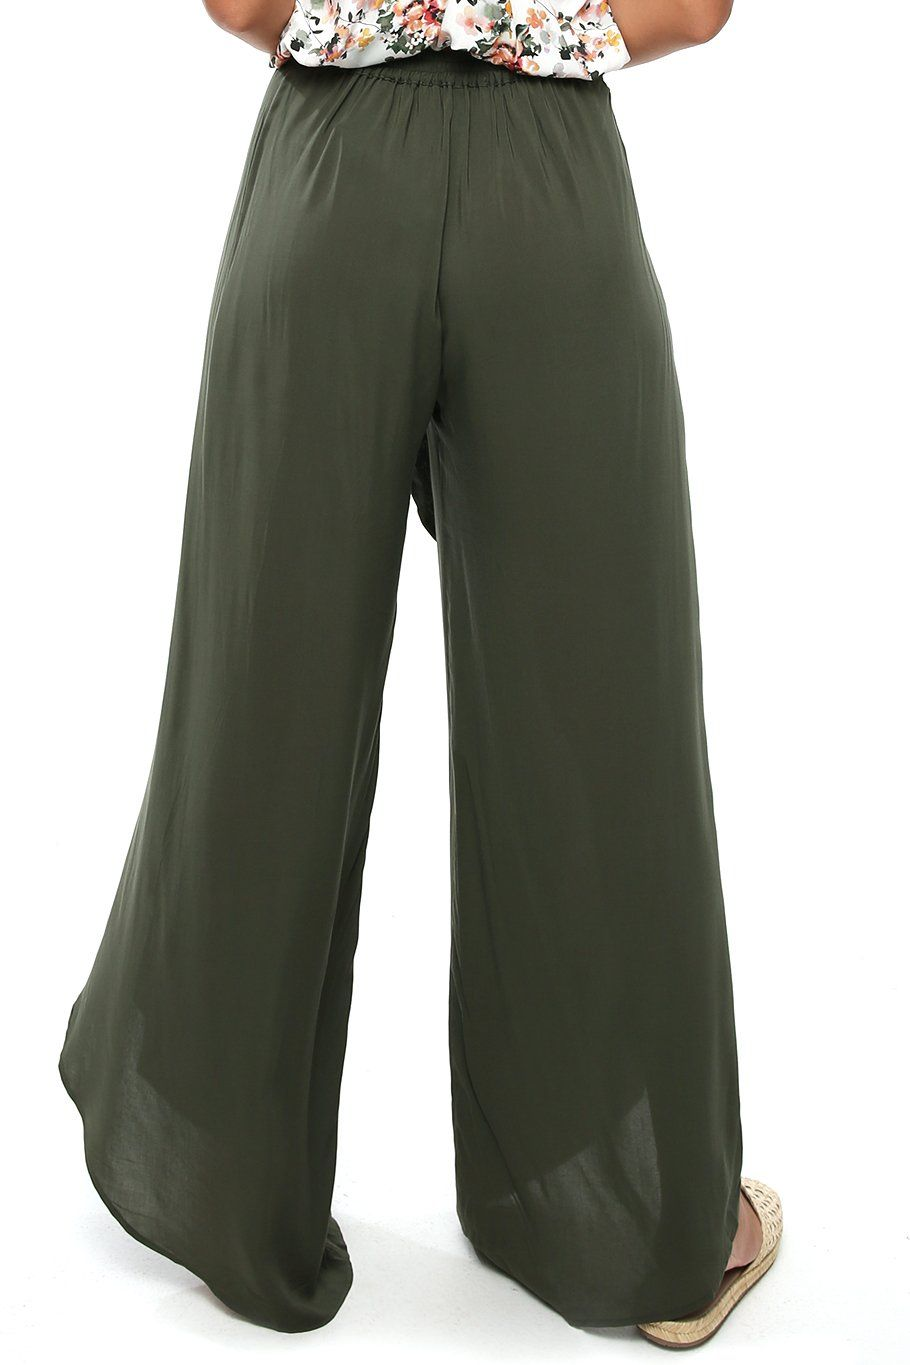 Bella Beach Pant - Forest - Shore